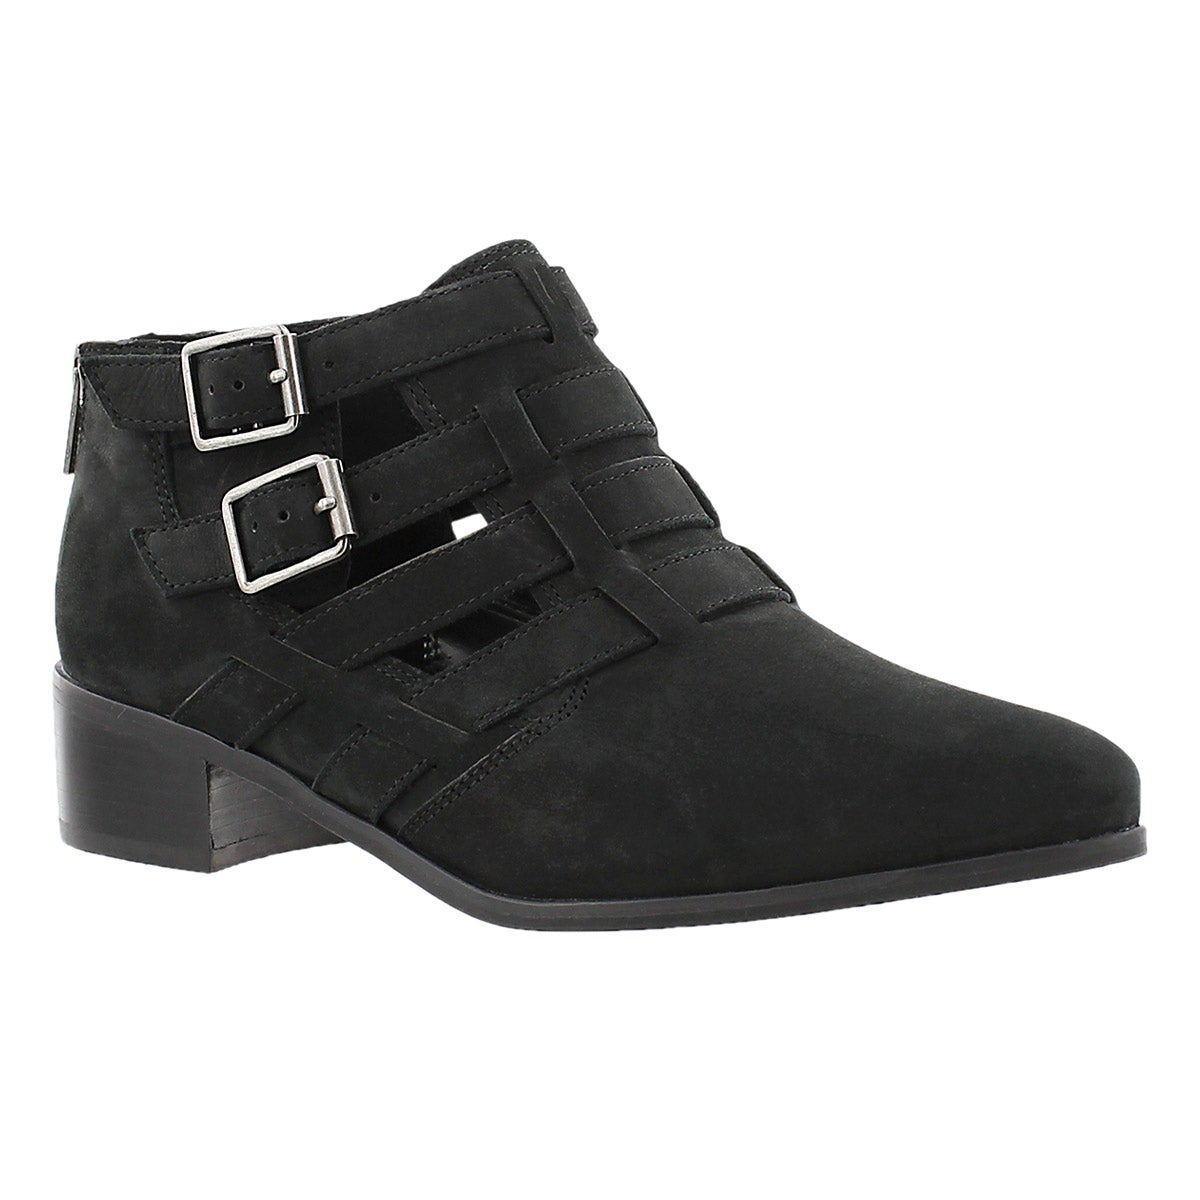 Lds Marlina Ramble black ankle boot